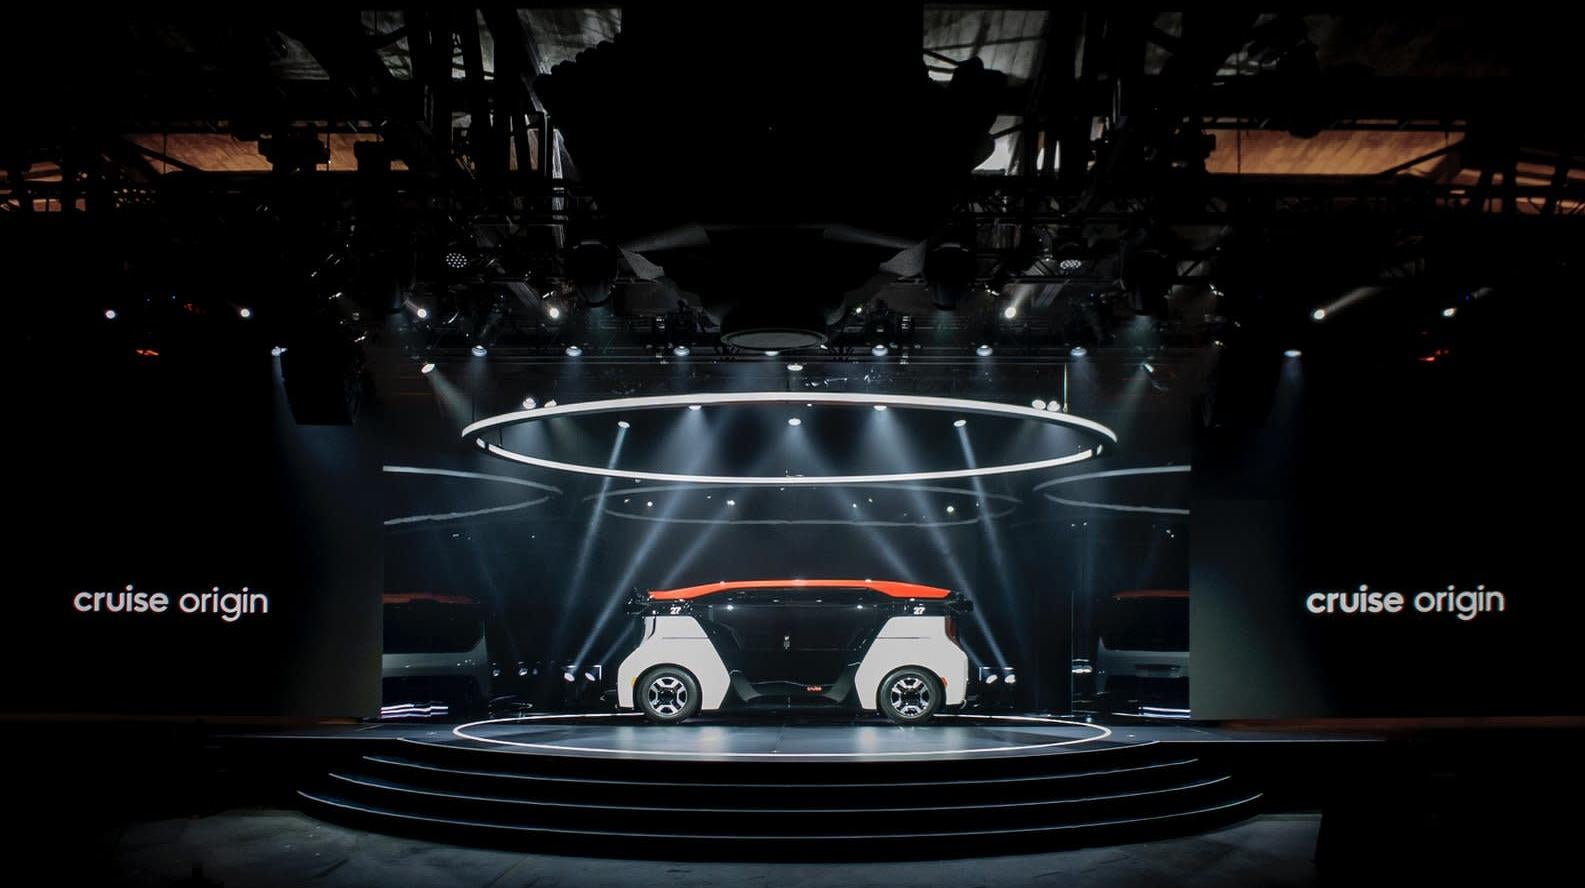 The 2020 Cruise Origin: Going 'Beyond The Car' Means Self-Driving Shuttle Buses